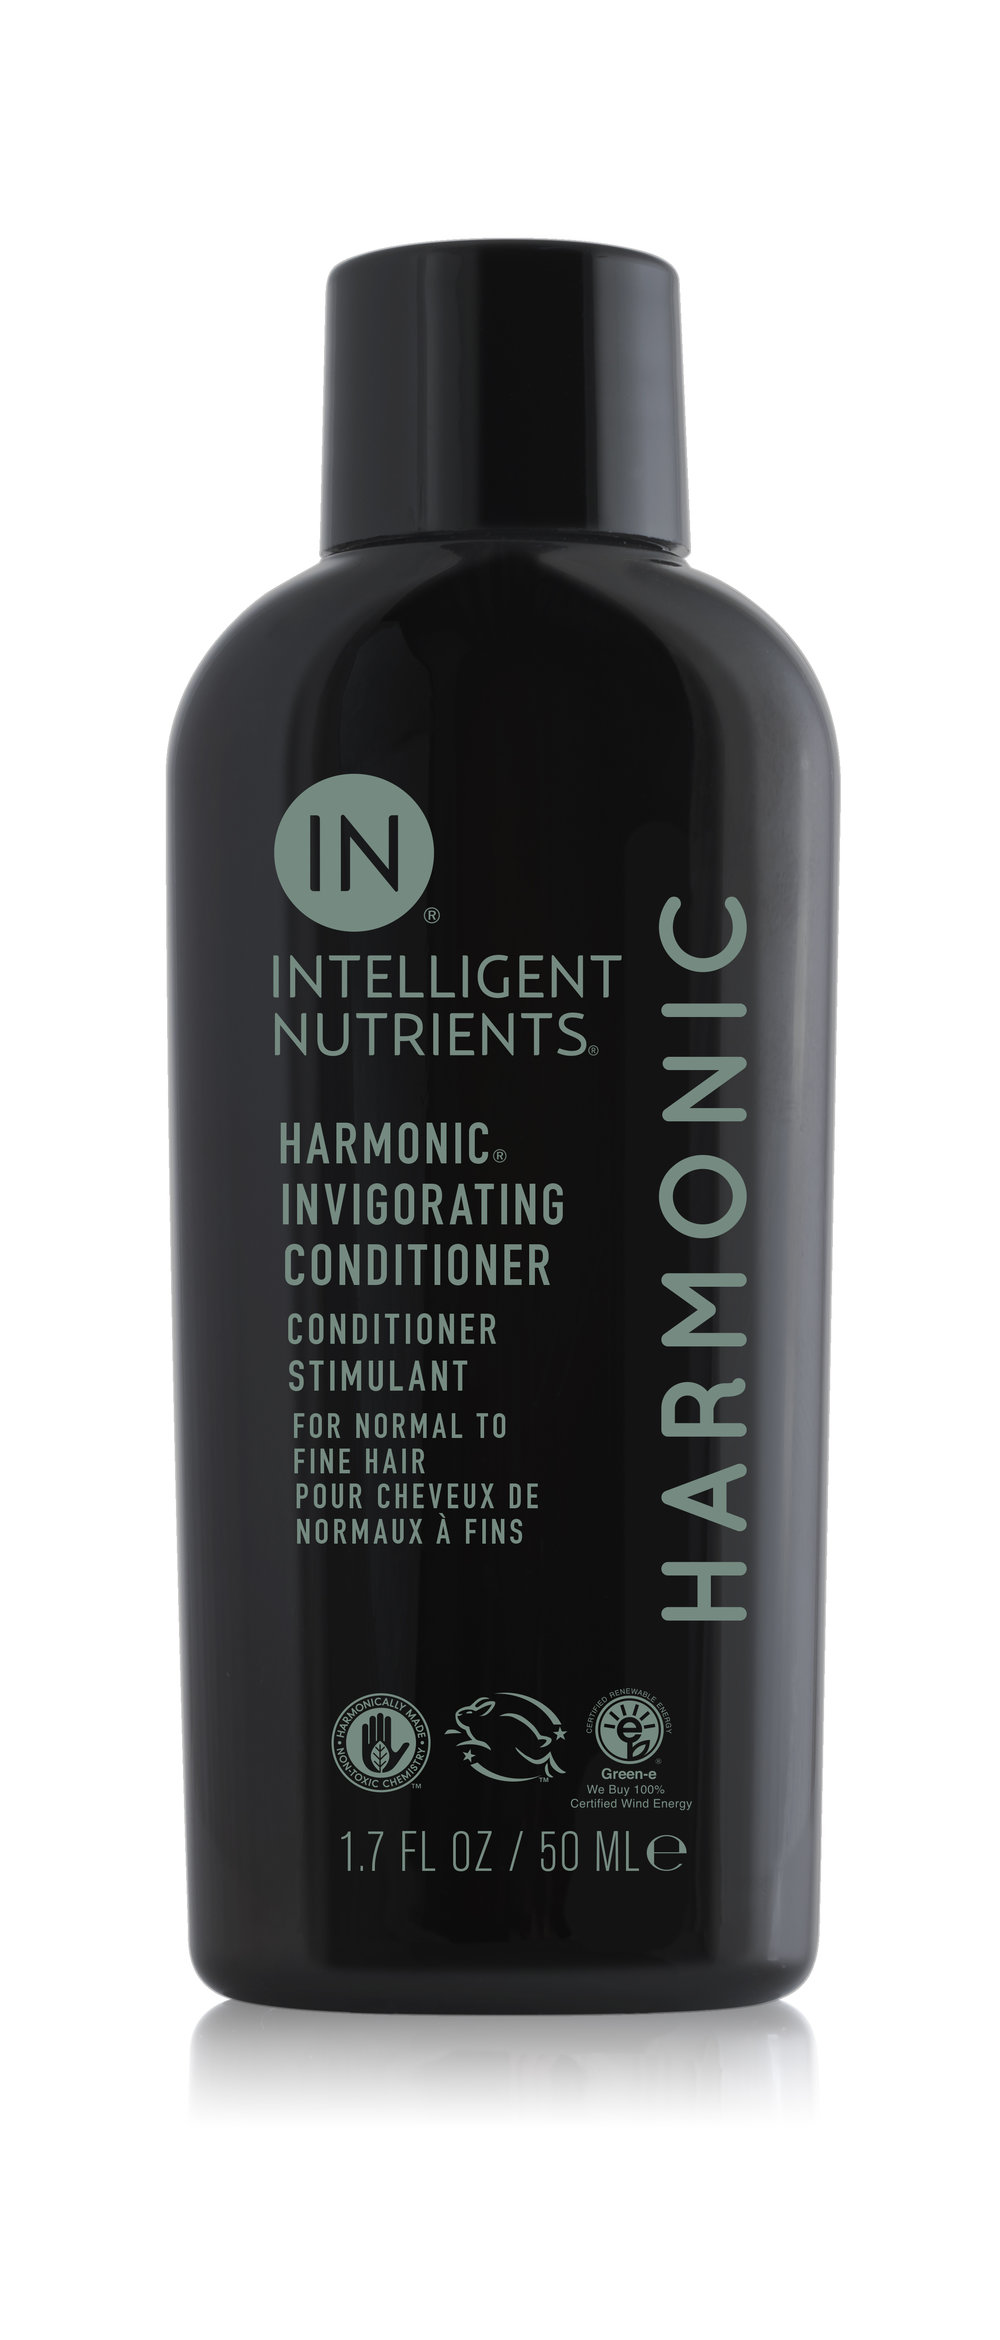 Harmonic Conditioner (DKK80/50ml)